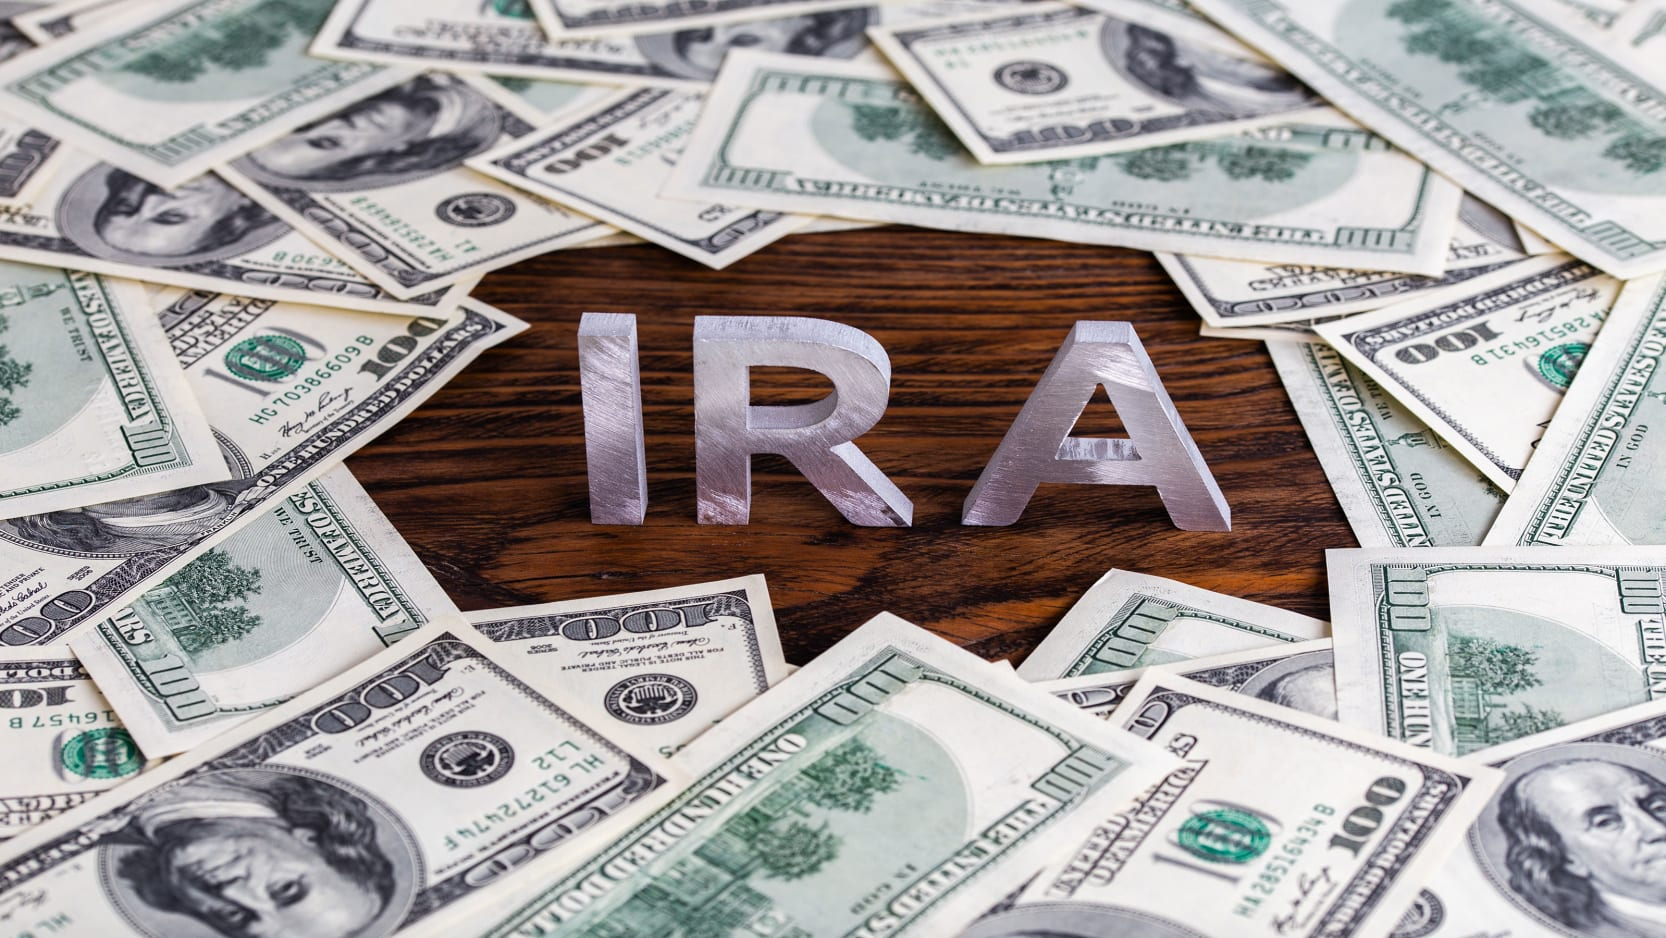 The letters IRA on a desk surrounded by $100 bills.